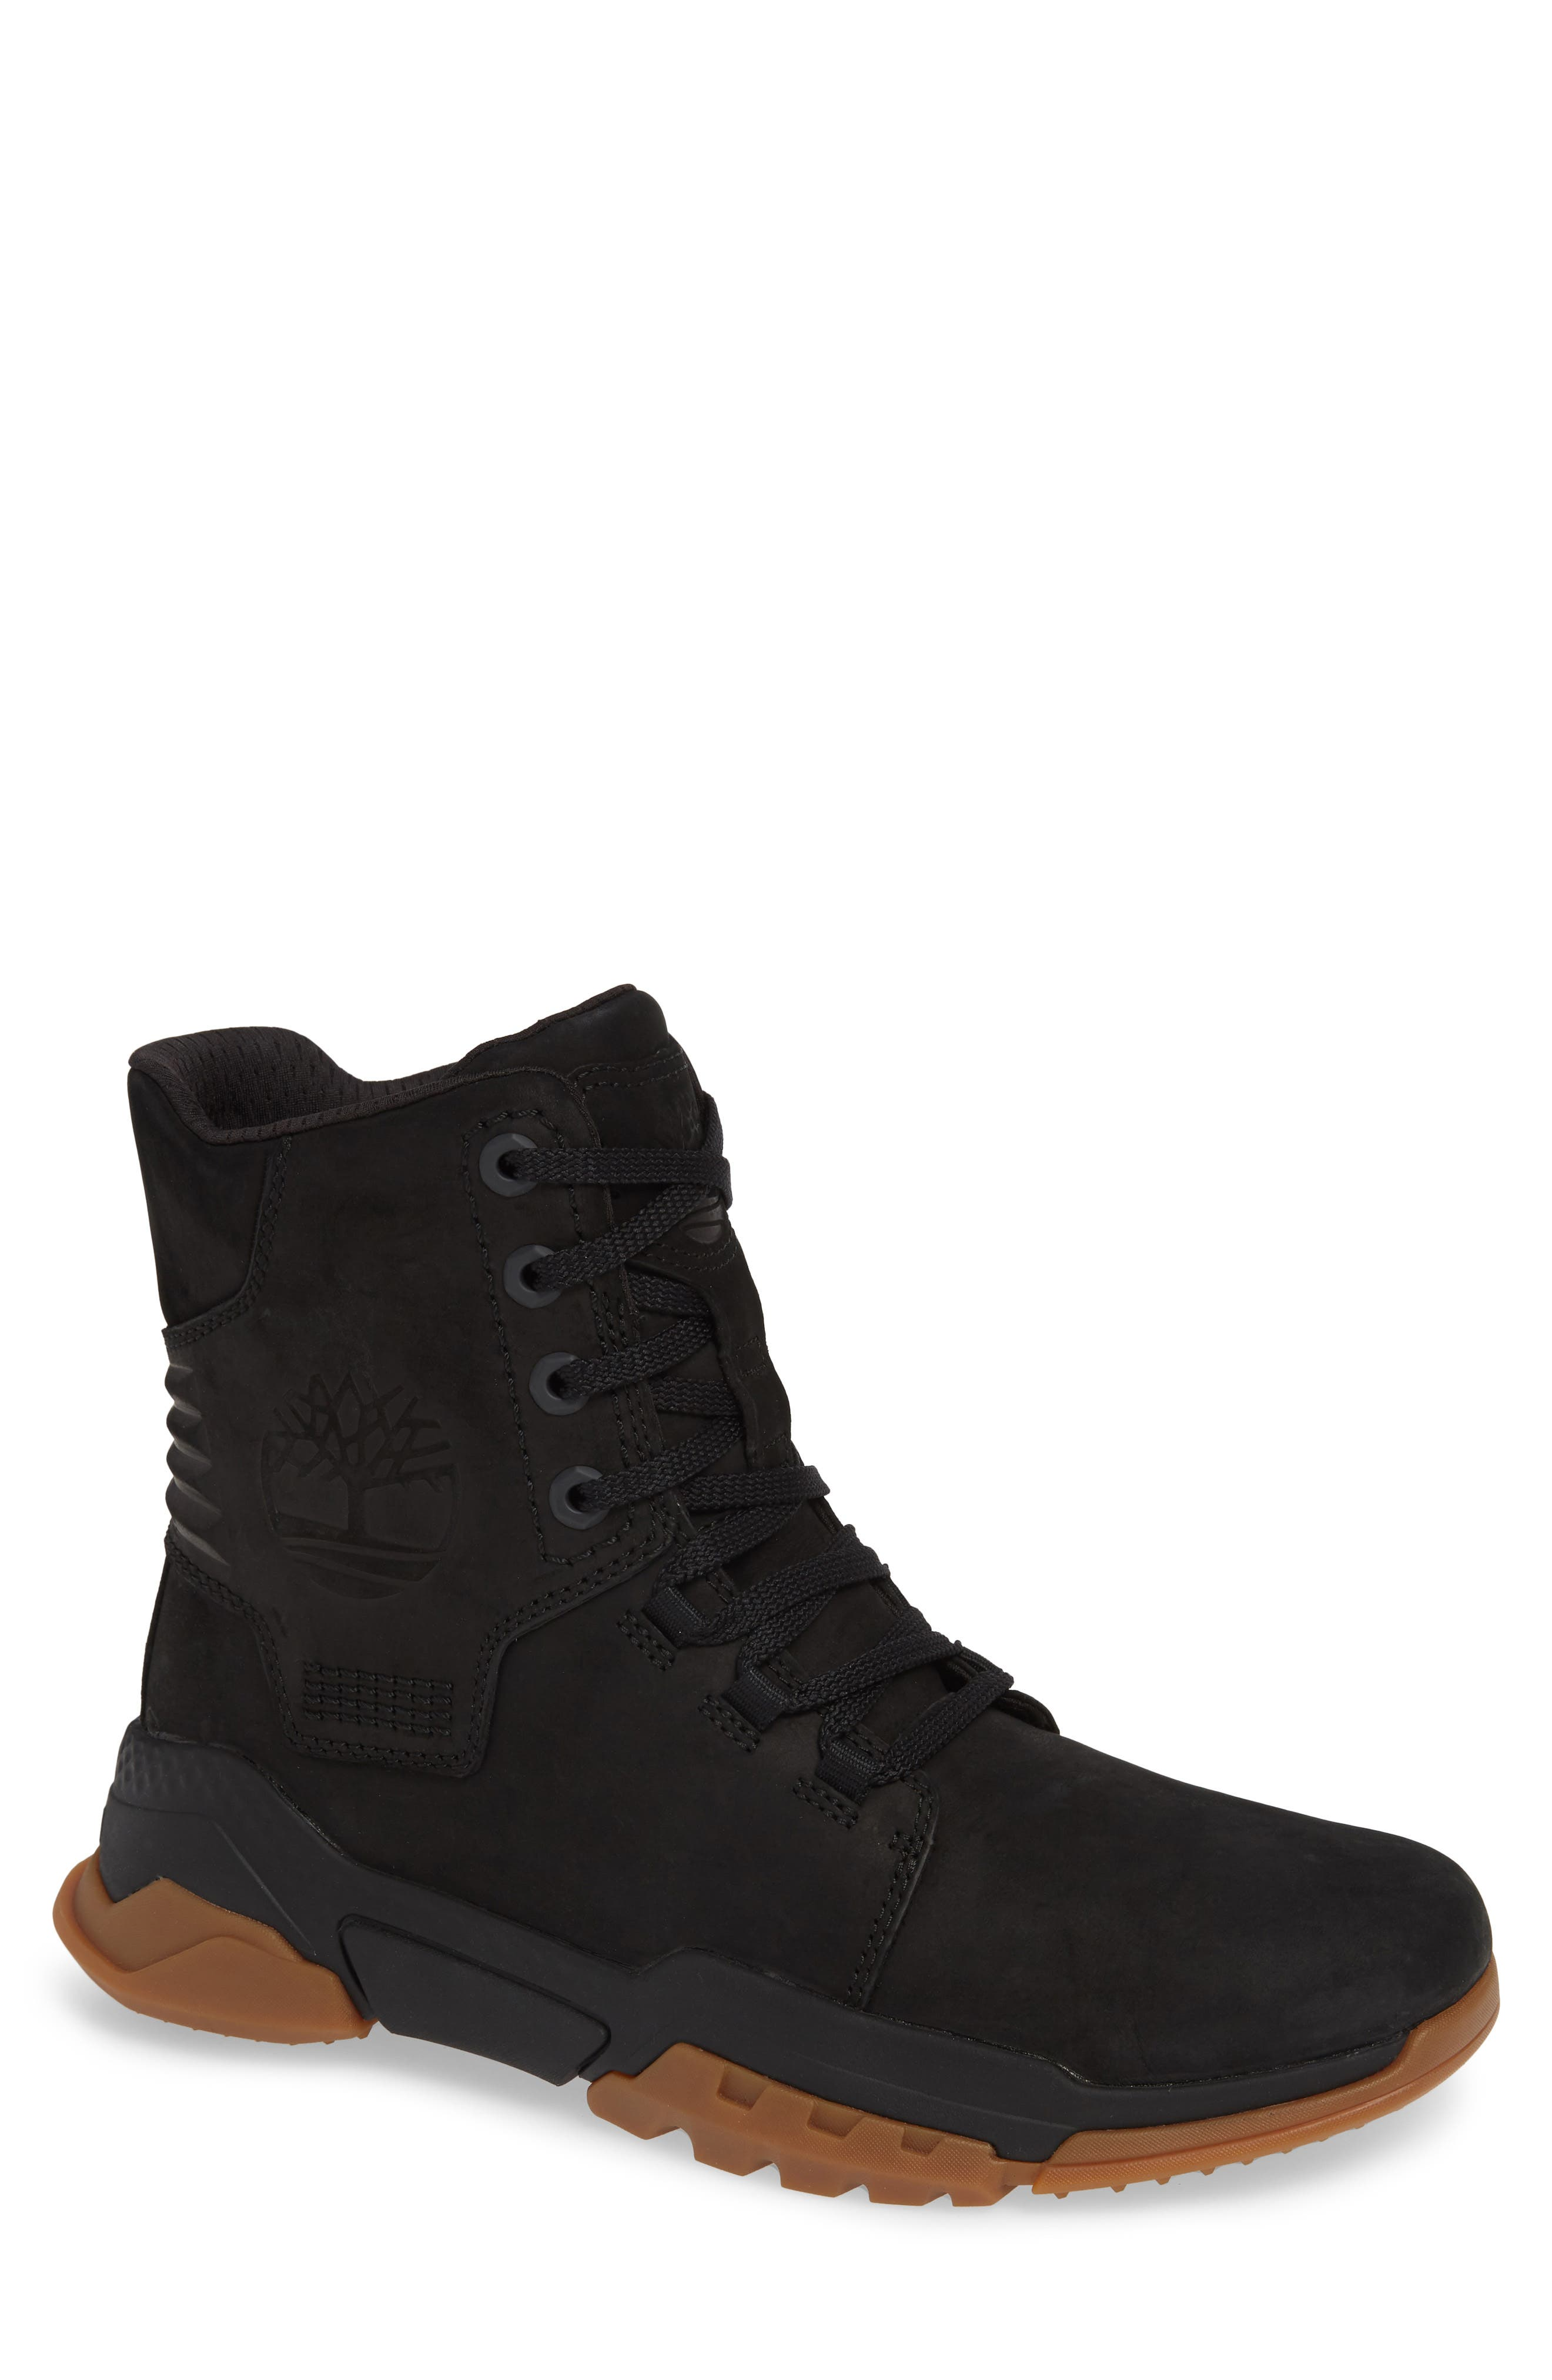 TIMBERLAND City Force Reveal Plain Toe Boot, Main, color, BLACK LEATHER/ NEOPRENE